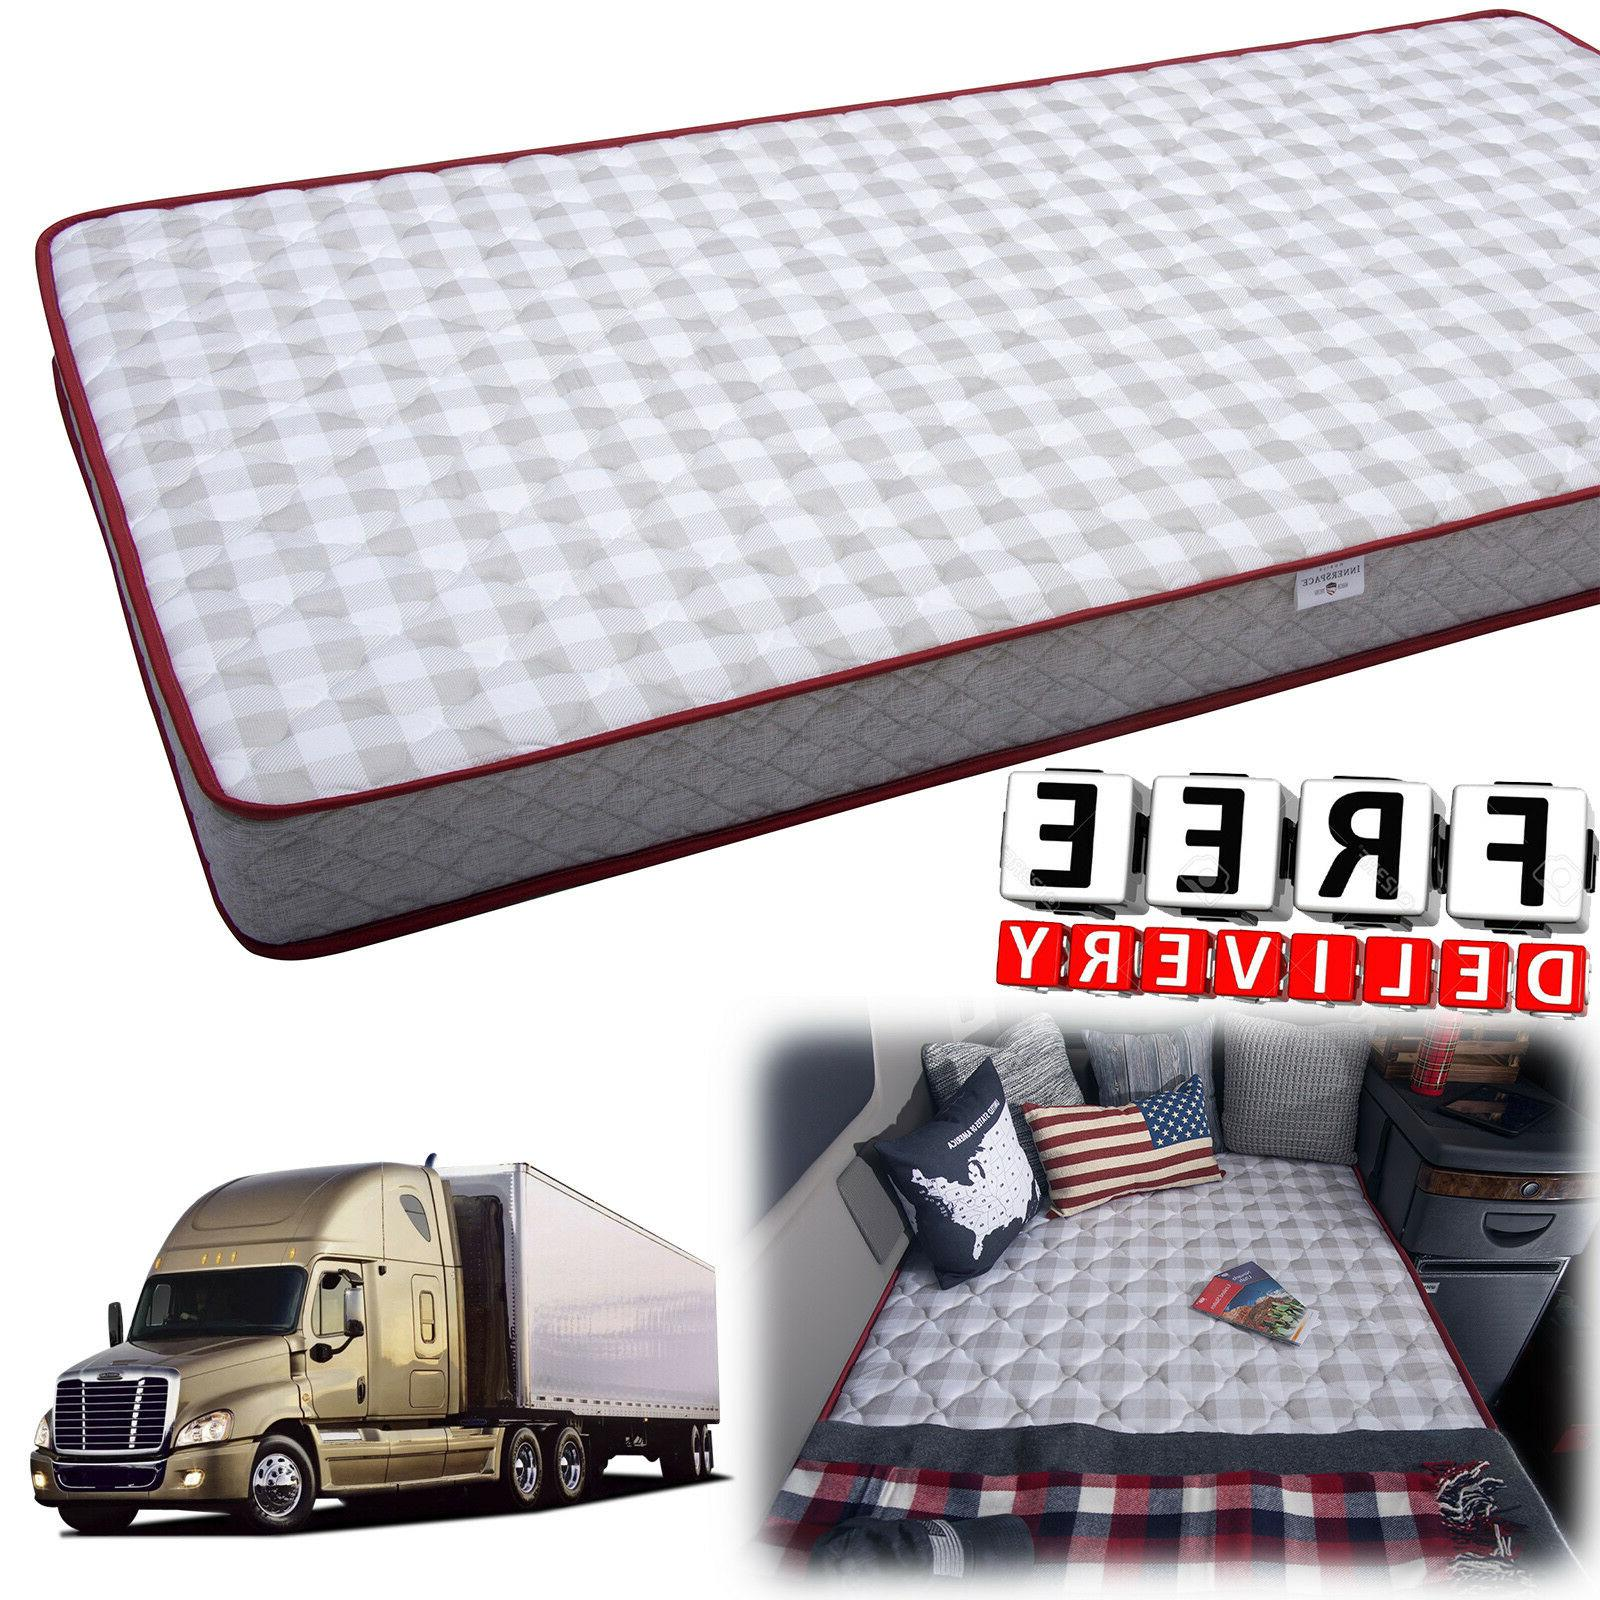 "Truck Mattress Luxury 6.5"" Travel RV Camper Trailer Reversib"